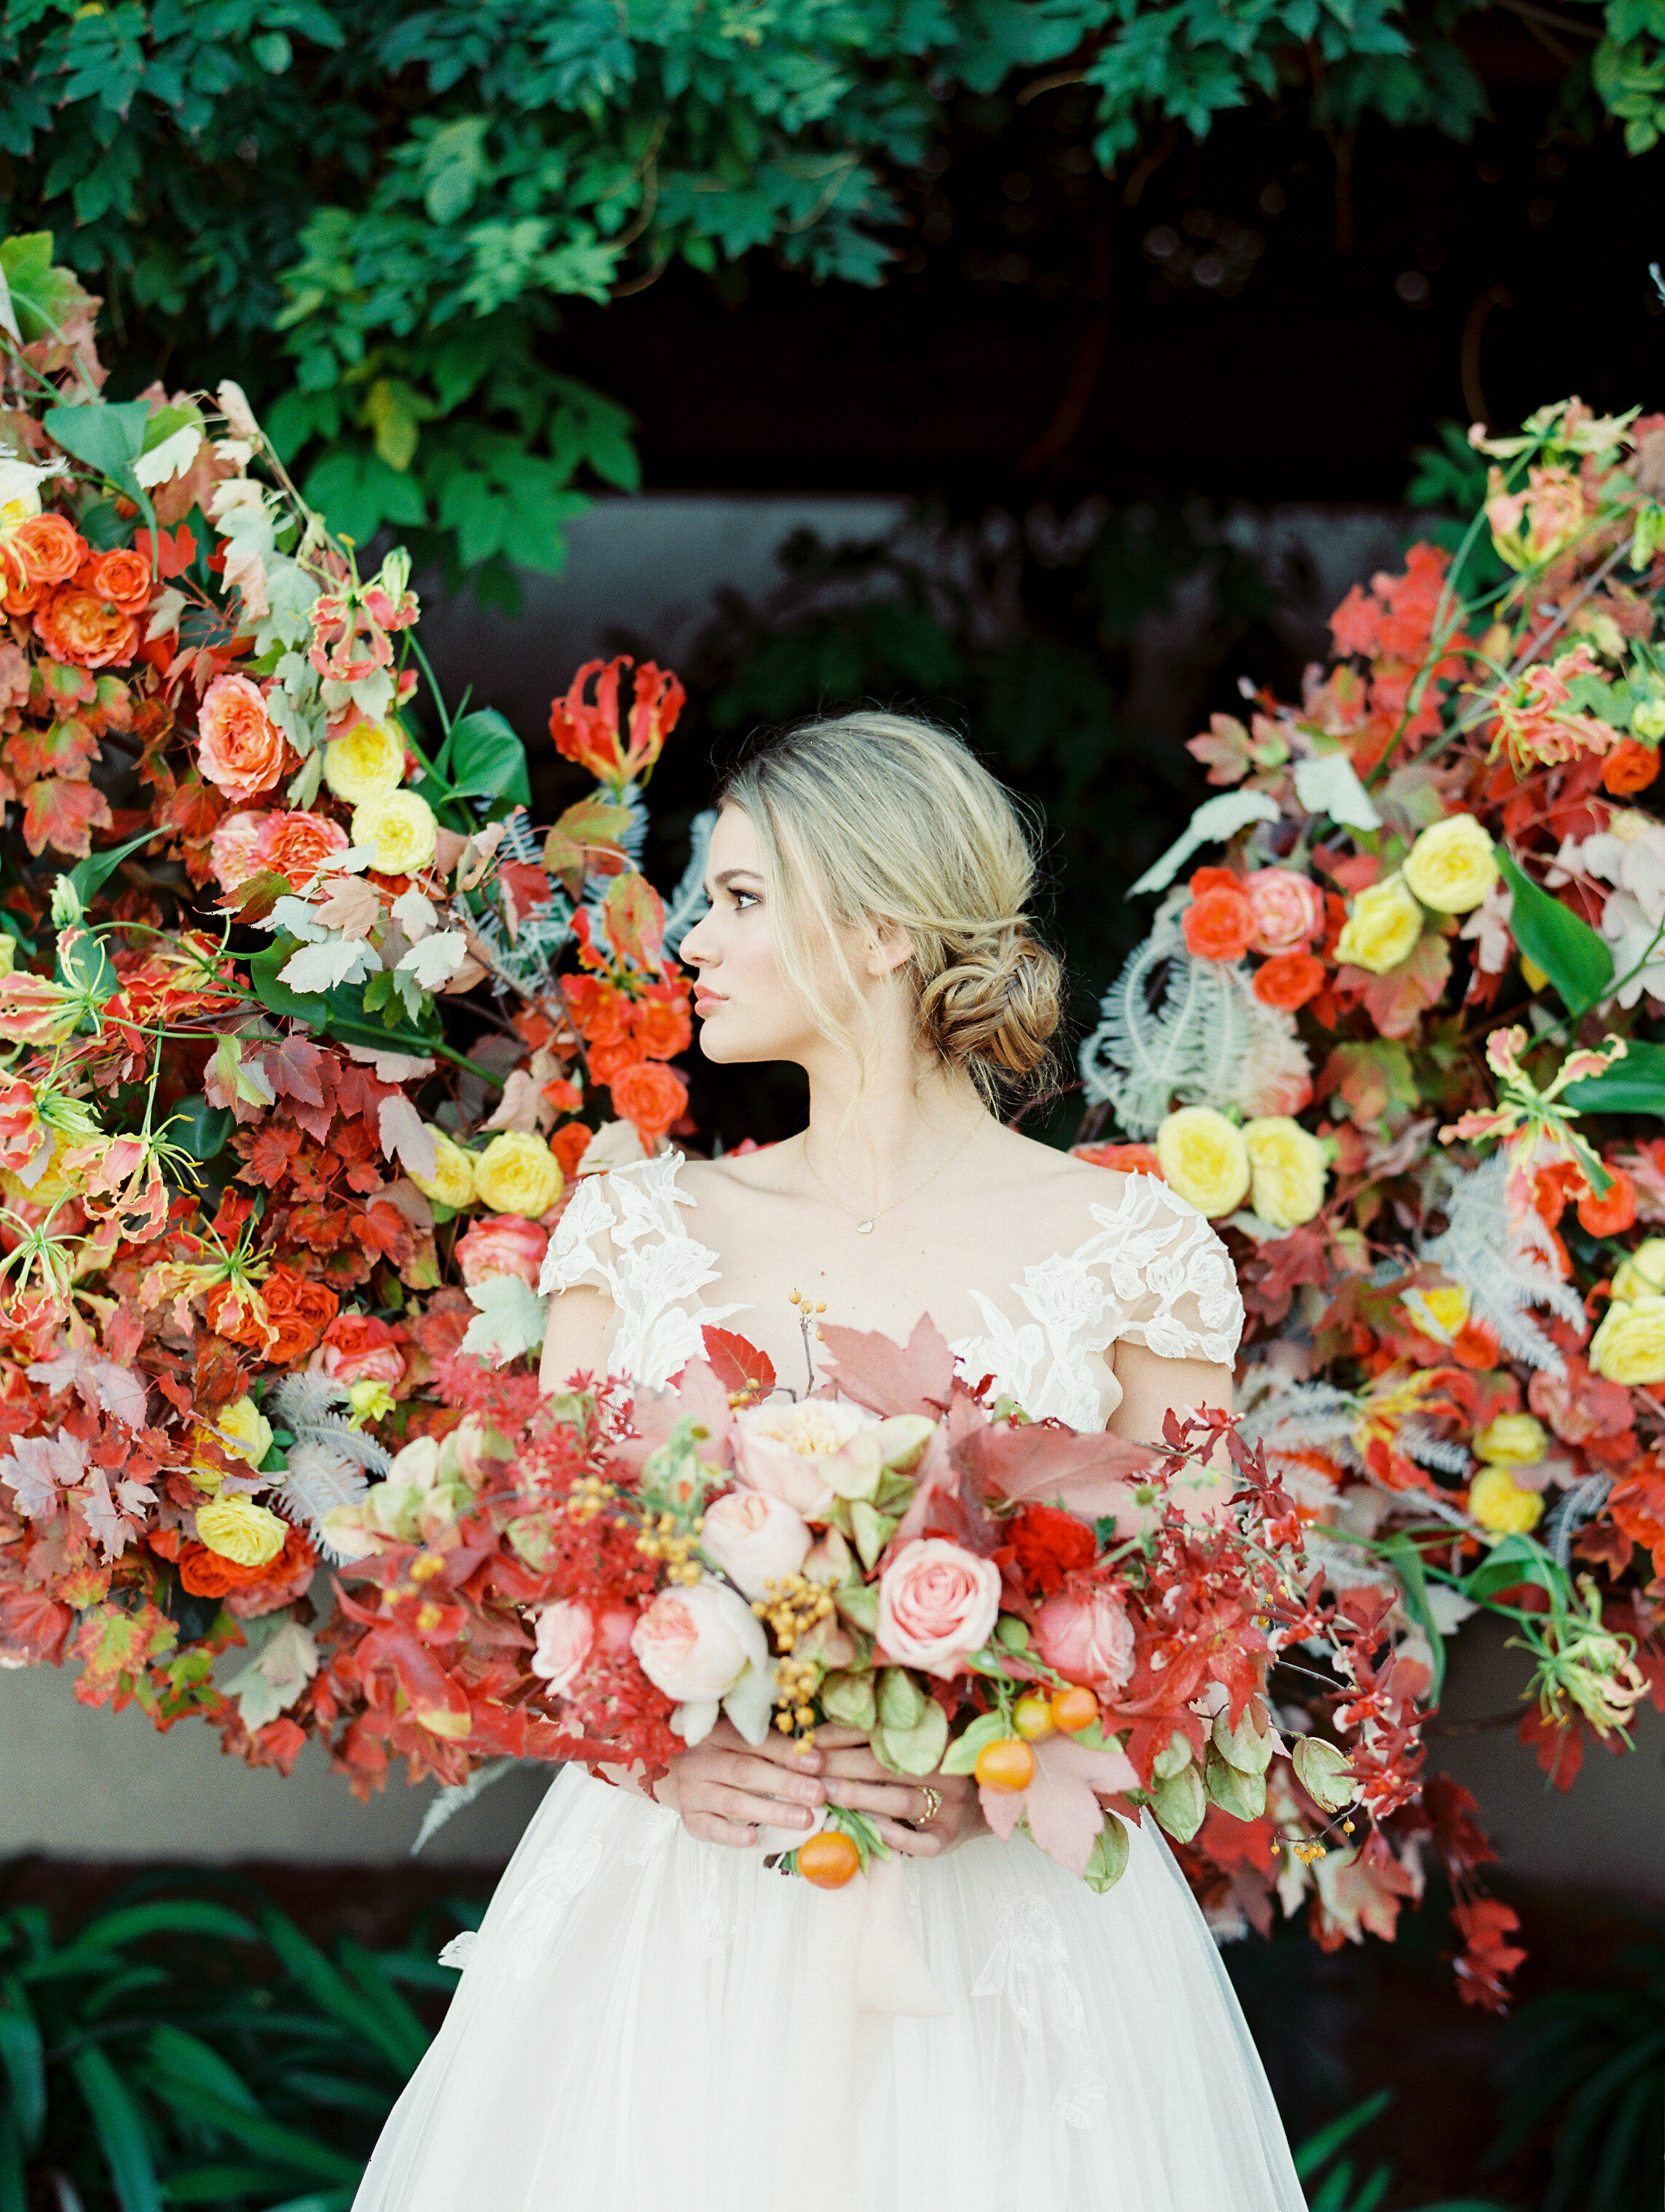 bridal makeup idea for bridal photoshoot with gorgeous autumn floral design and silk ribbon bouquet